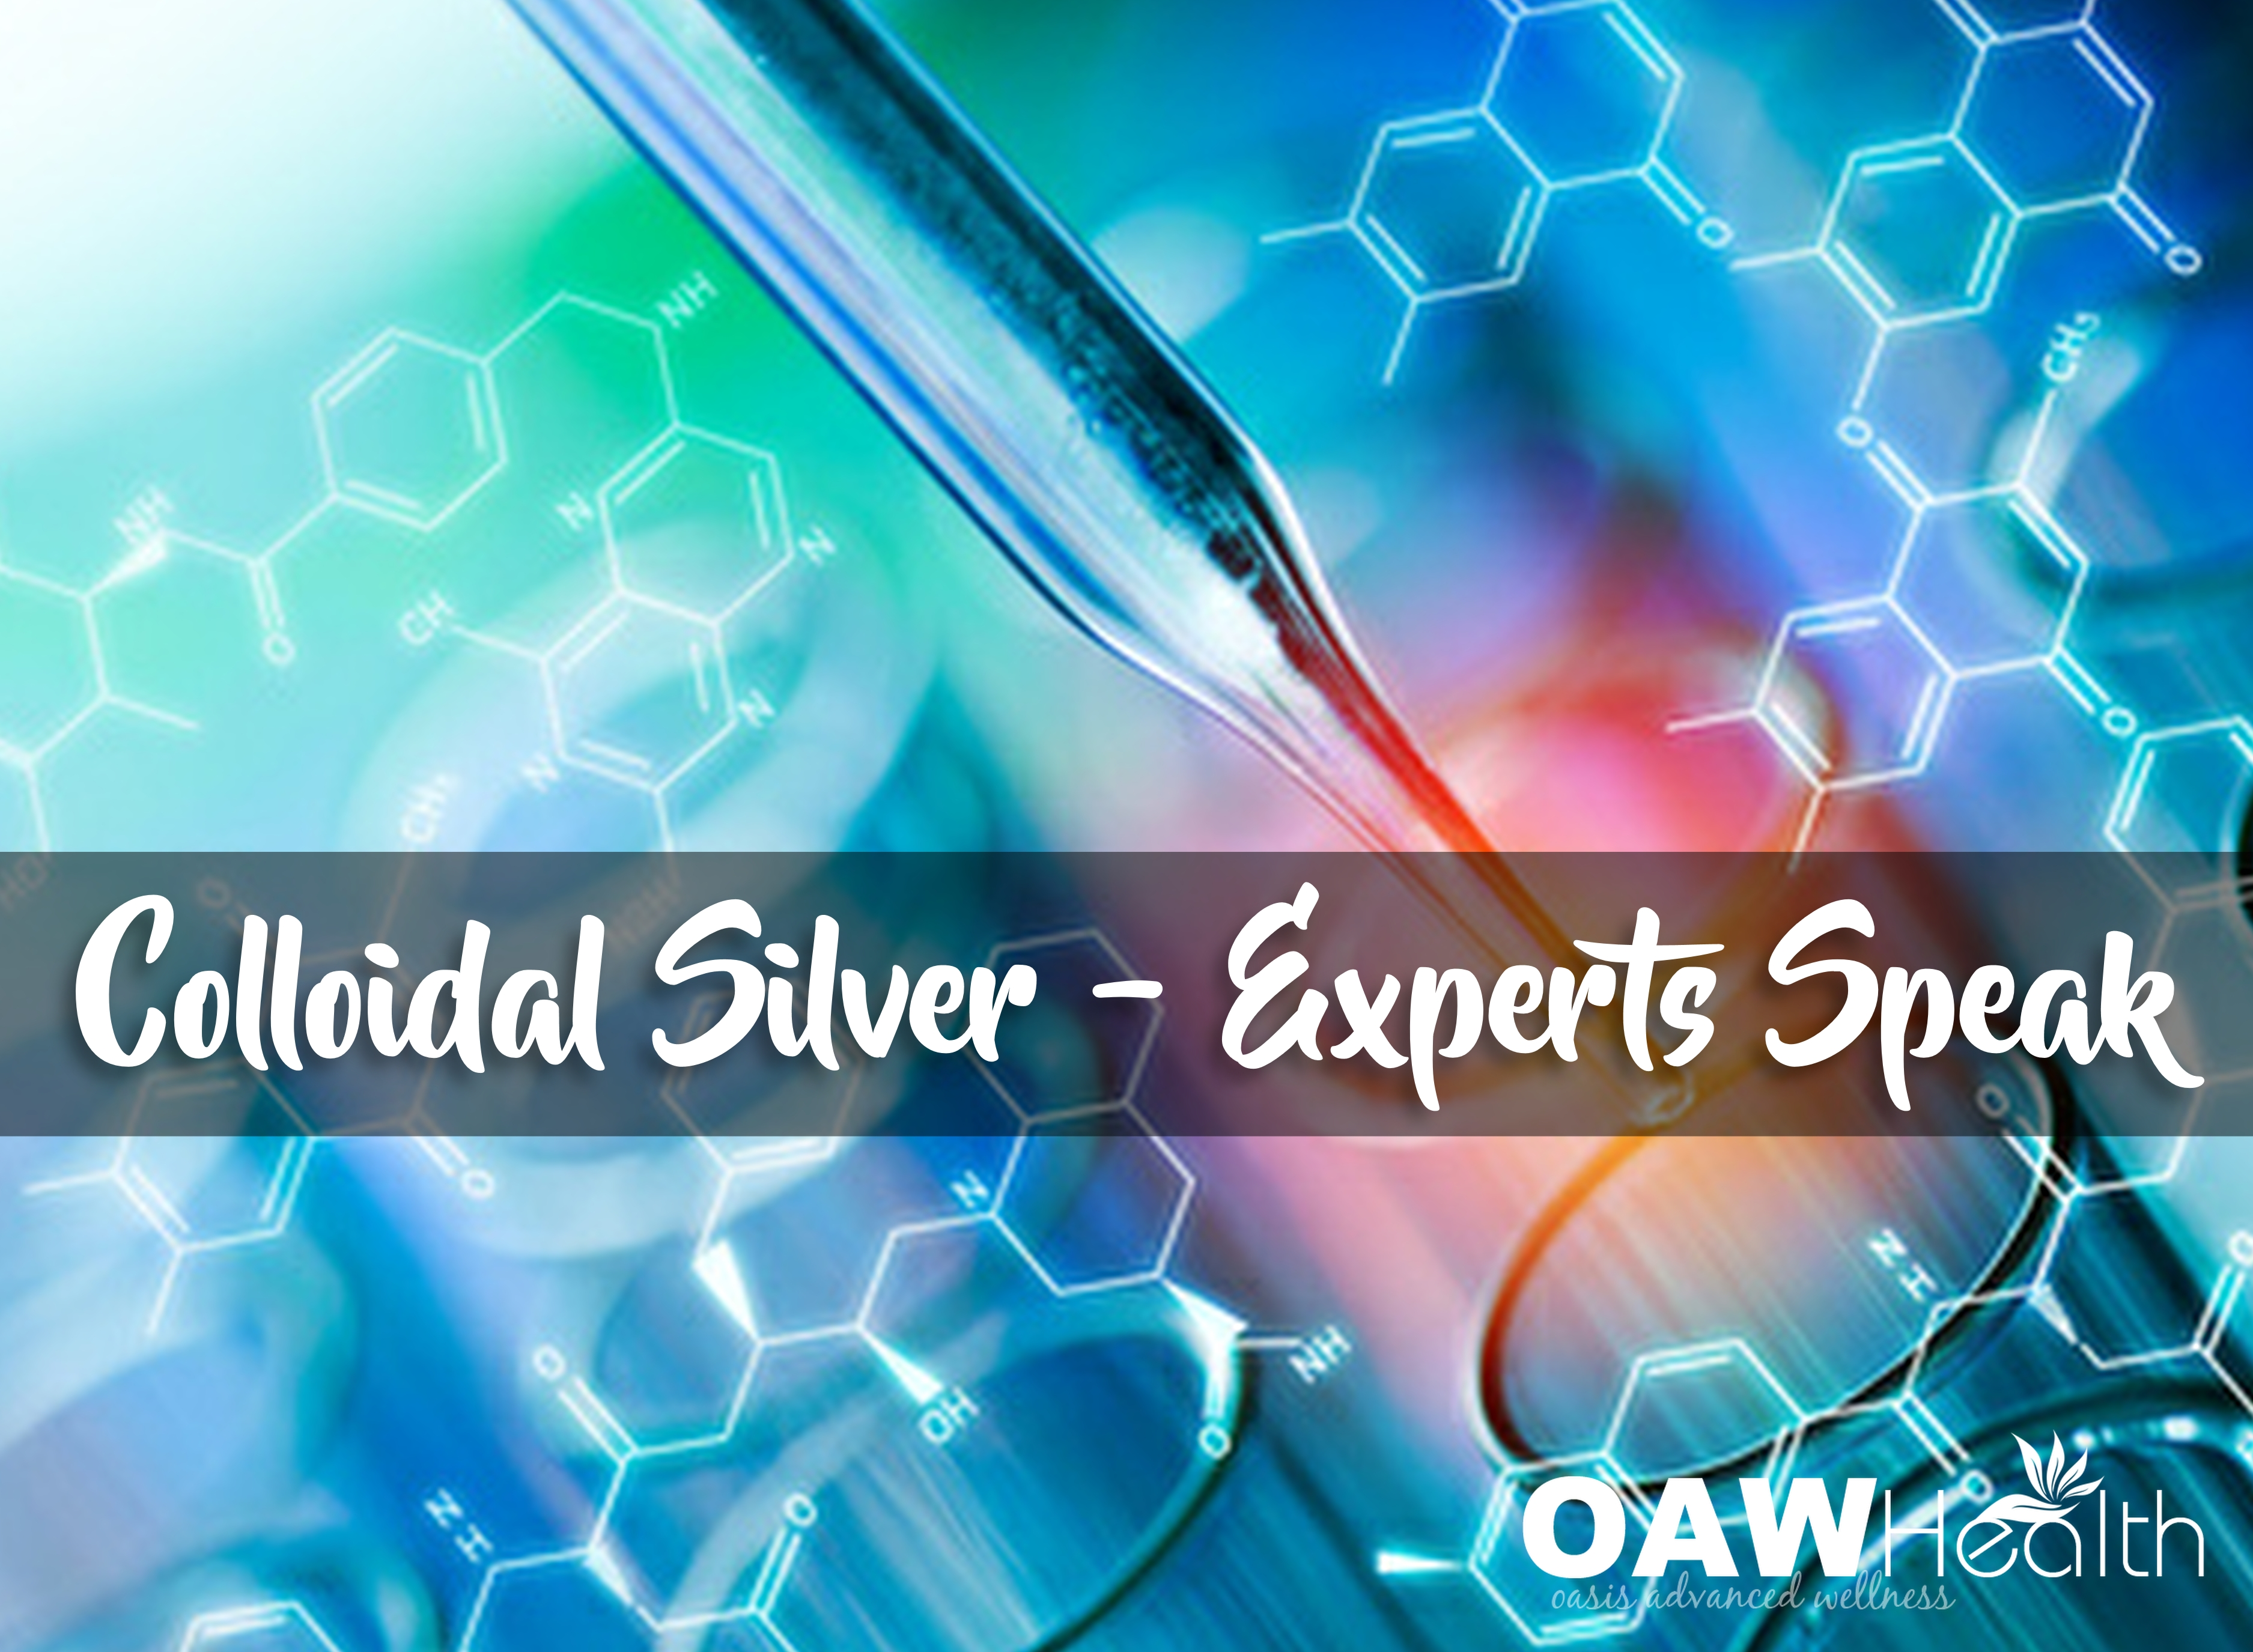 Colloidal Silver-Experts Speak